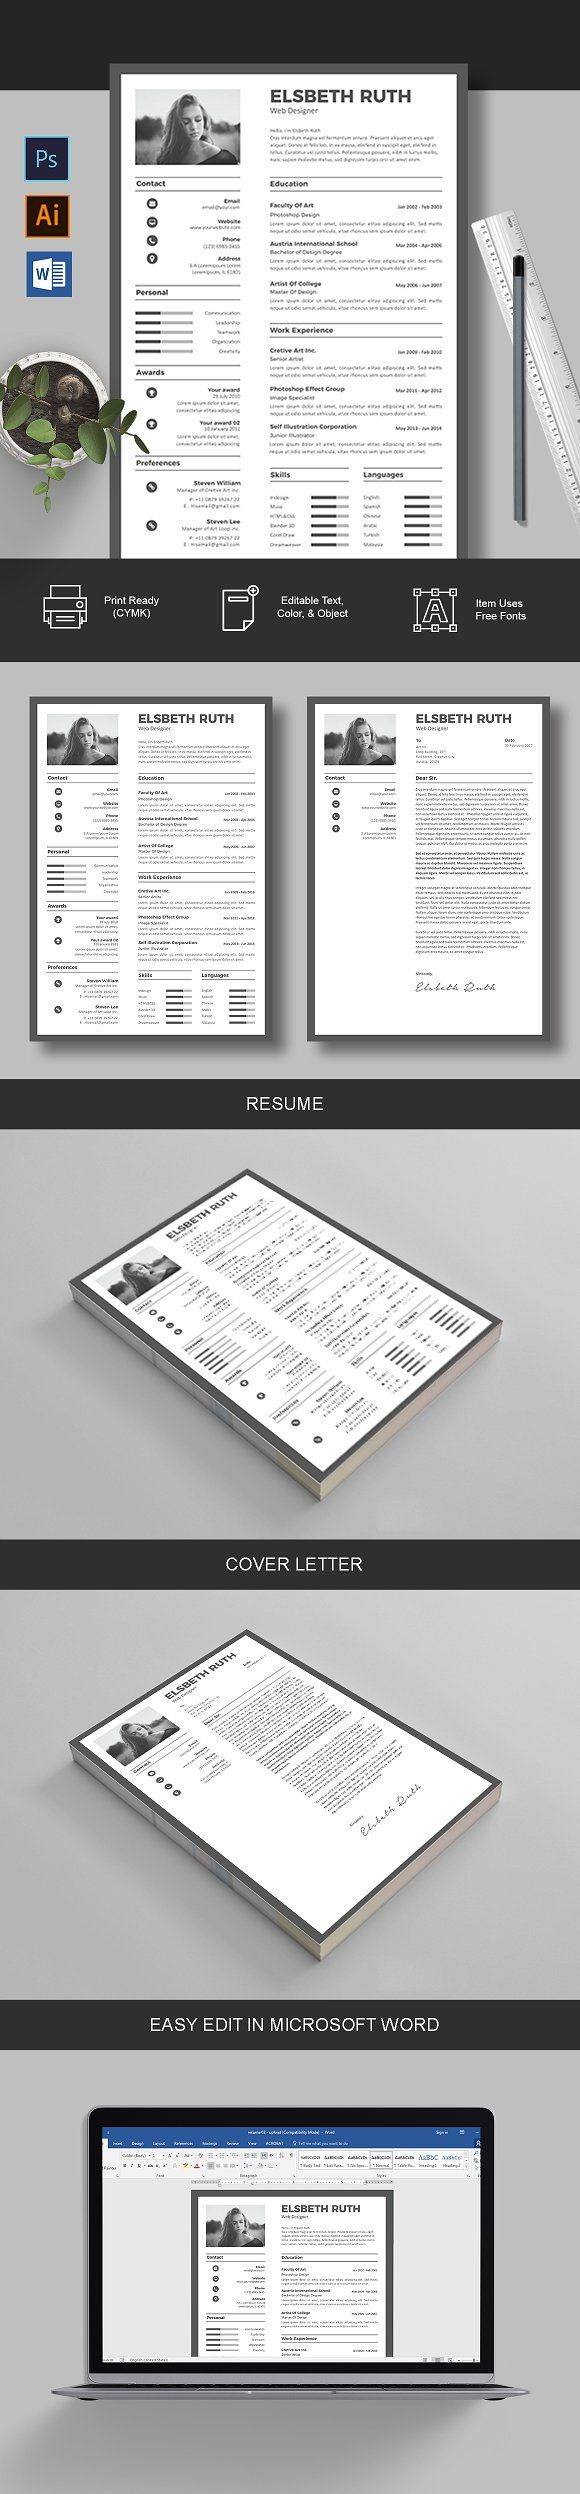 Resume u0026 Cover Letter creativework247 25 best